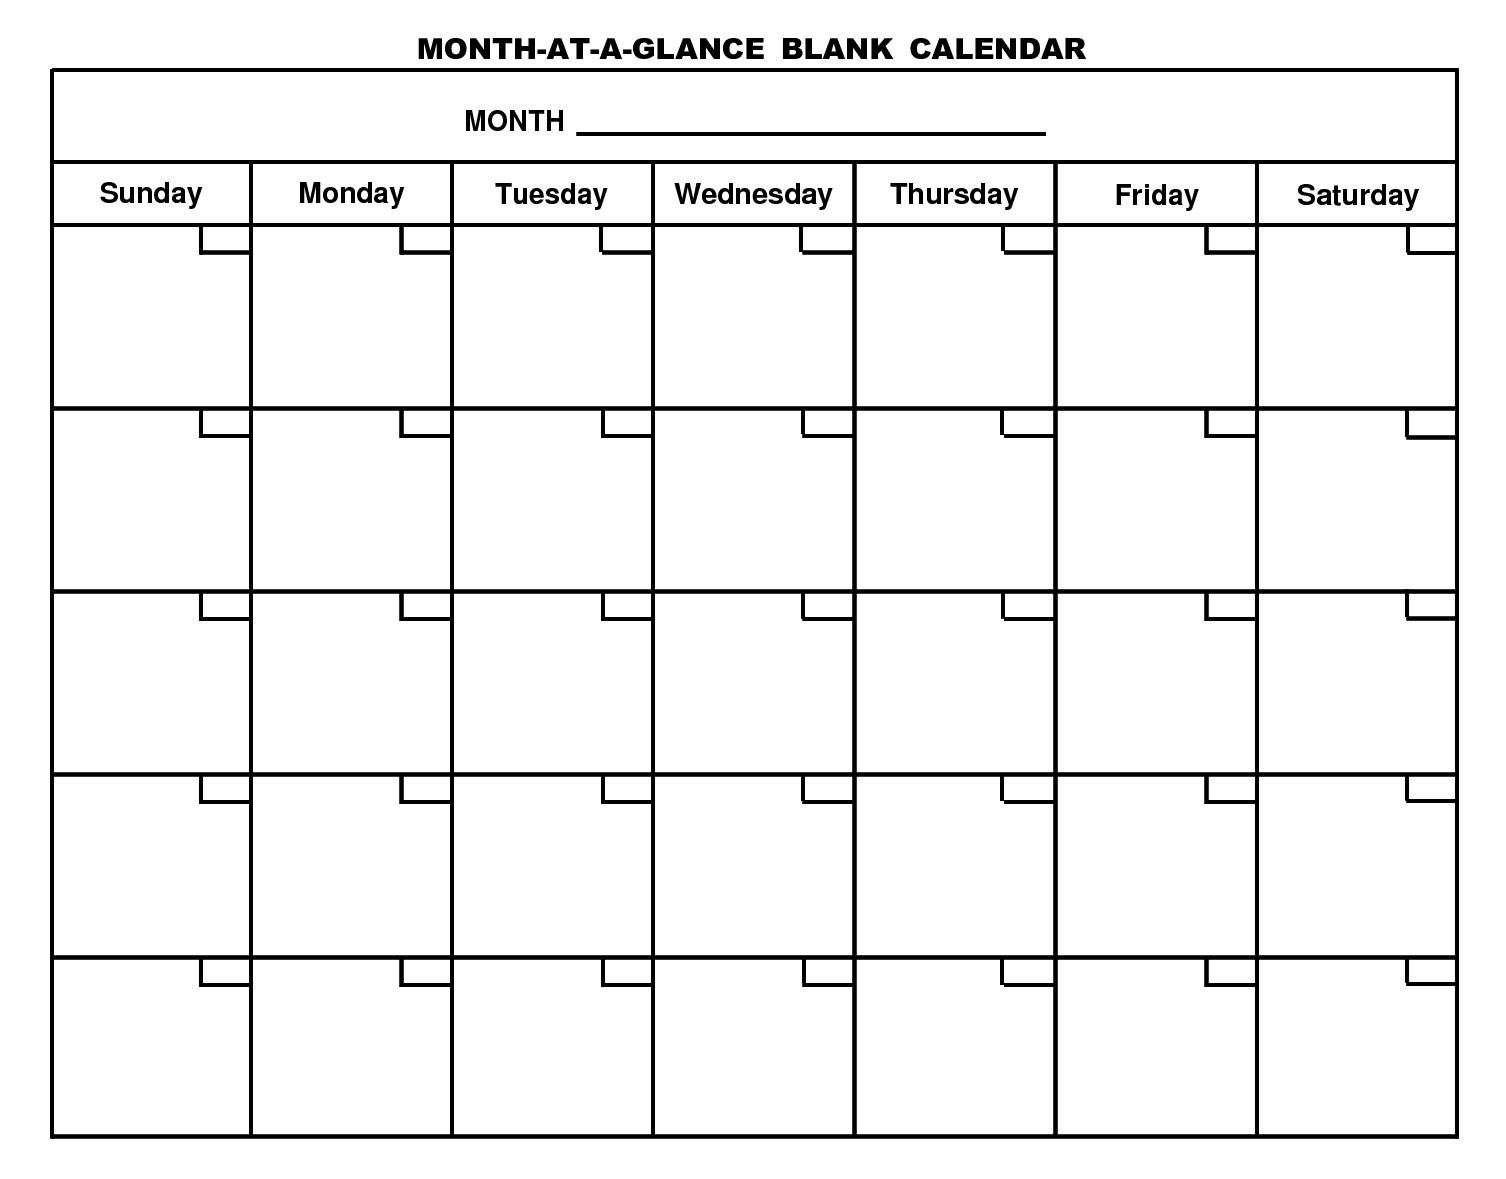 Monthly Calendar Template Uxdjxg In Month At A Glance Blank Calendar intended for Template For Calendar By Month